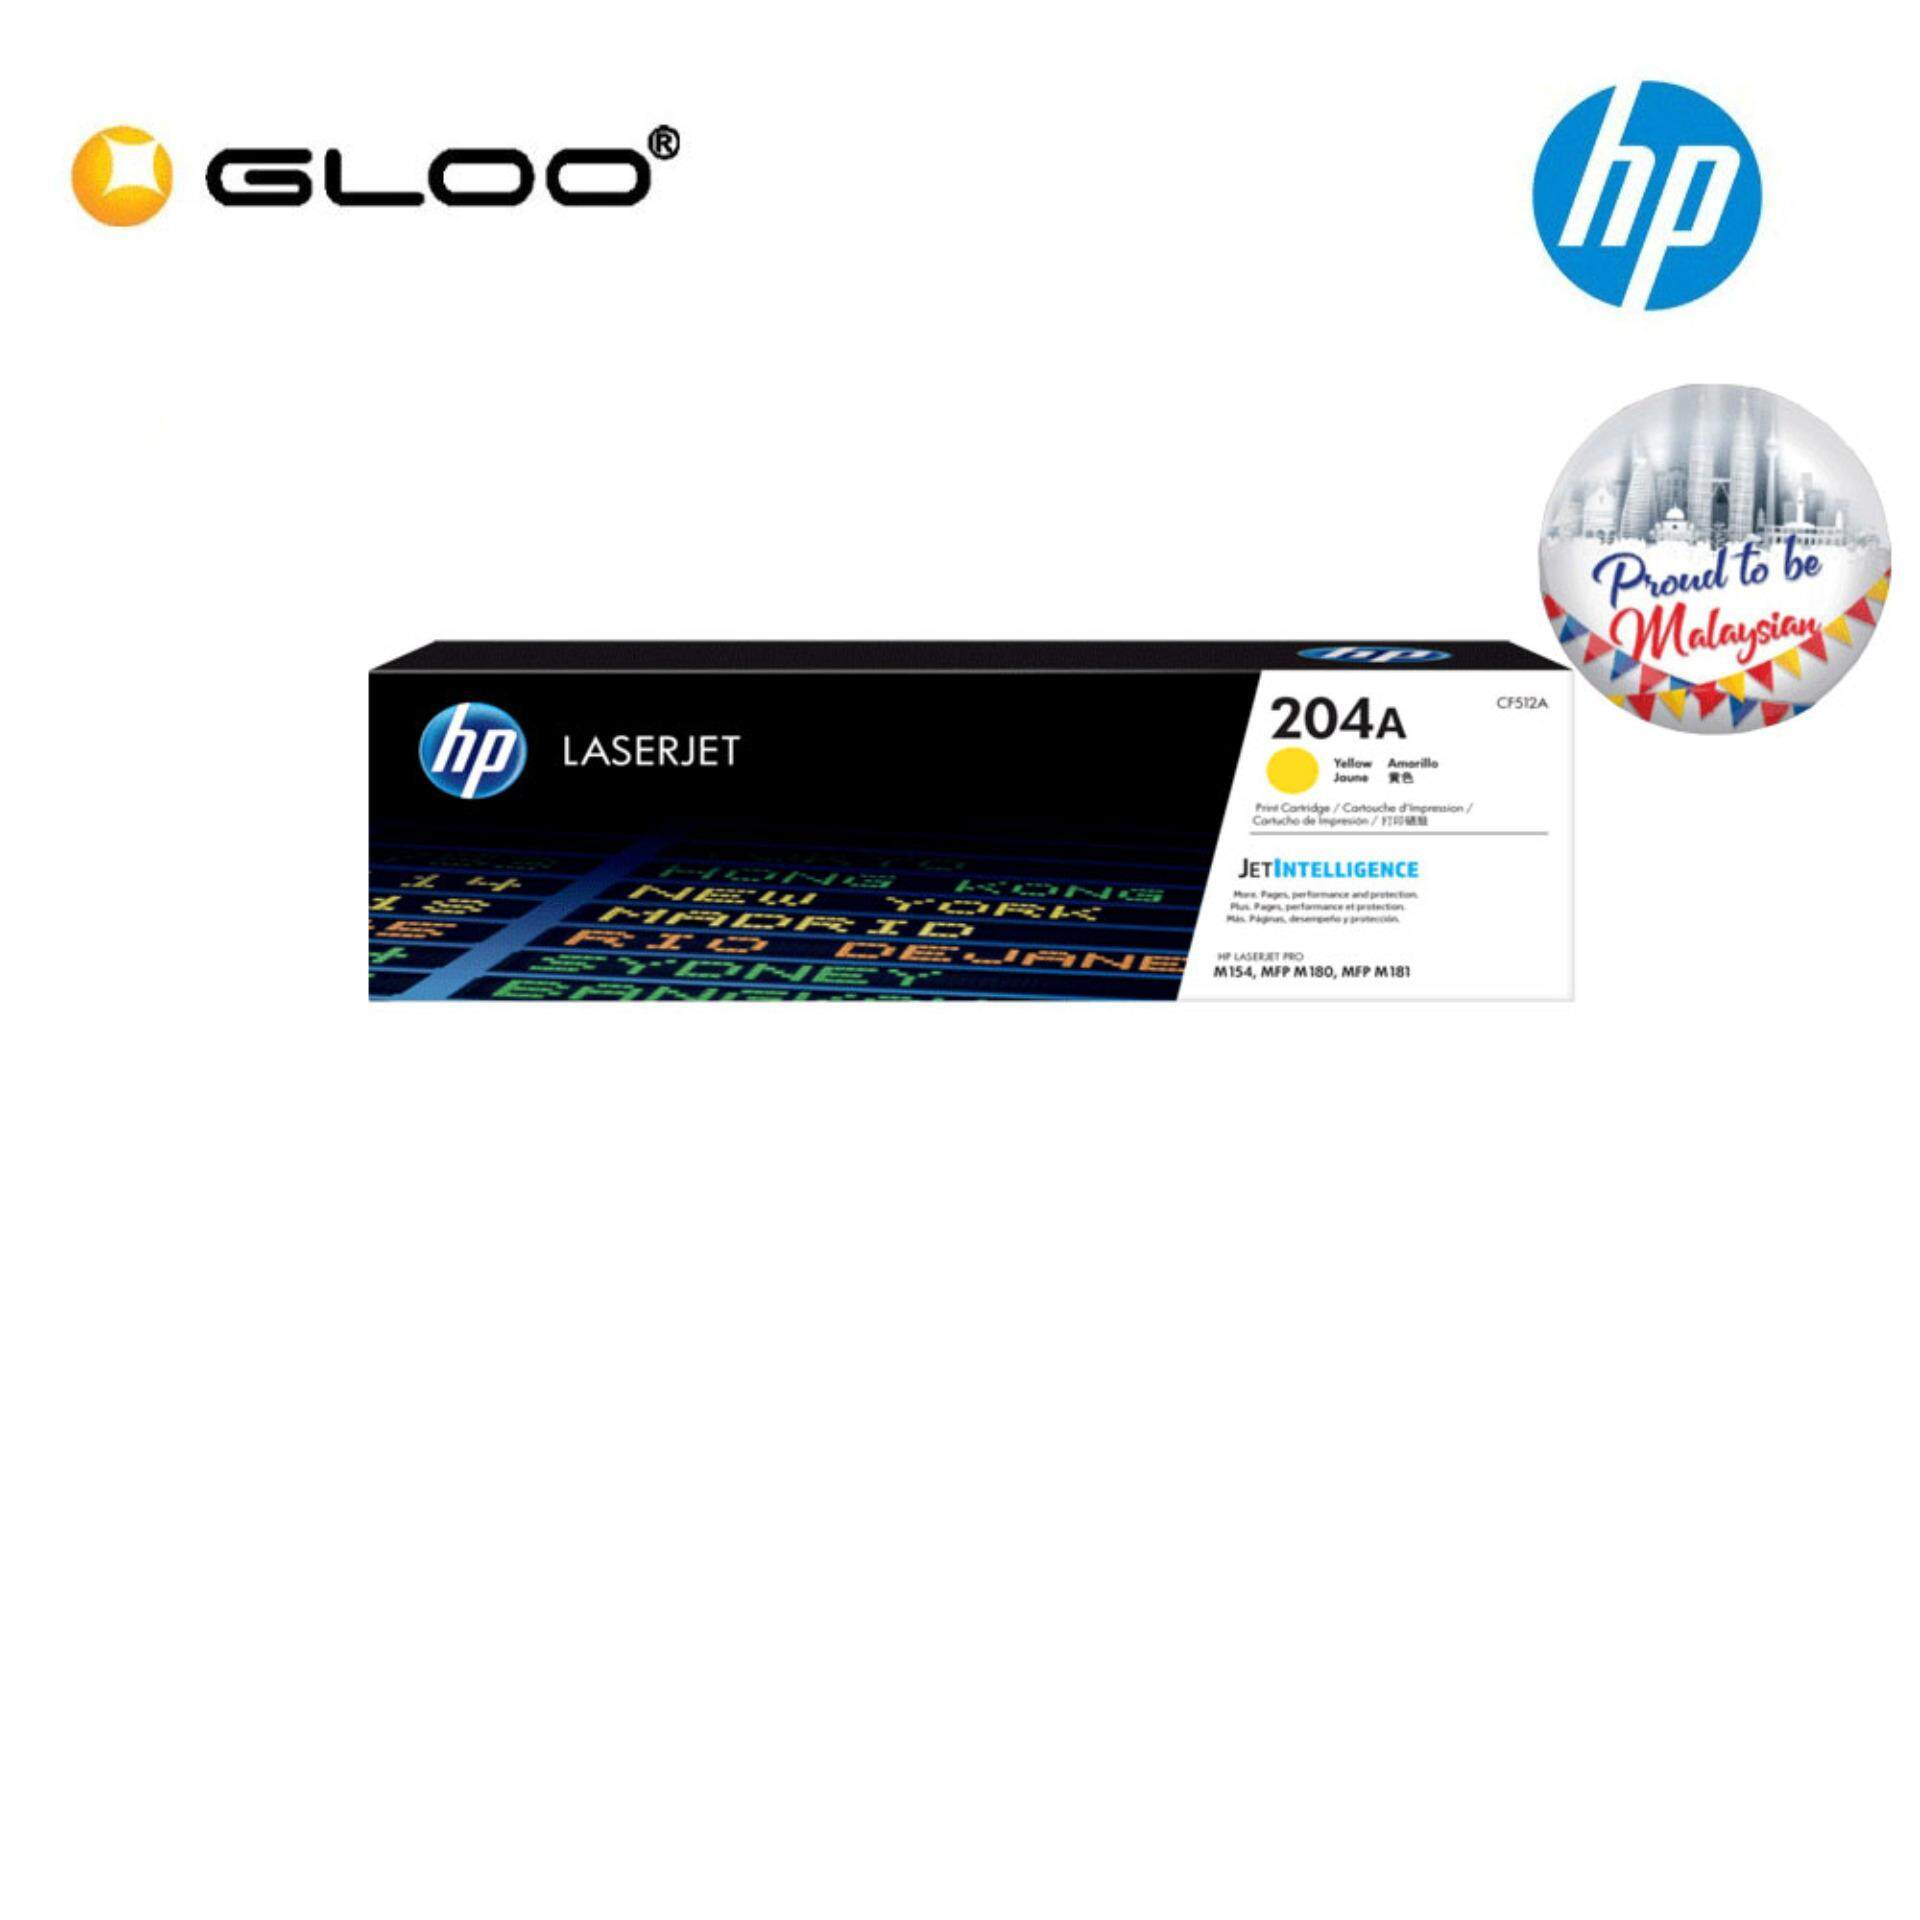 HP 204A Laserjet Toner Catridge Yellow CF512A/ HP Color LaserJet Pro M154a/ M154nw/ HP Color LaserJet Pro MFP M180n/ M180nw/ M181fw [REDEMPTION] Touch & GO/Boost E- voucher worth RM30 *16th Aug-20th Oct 2019*